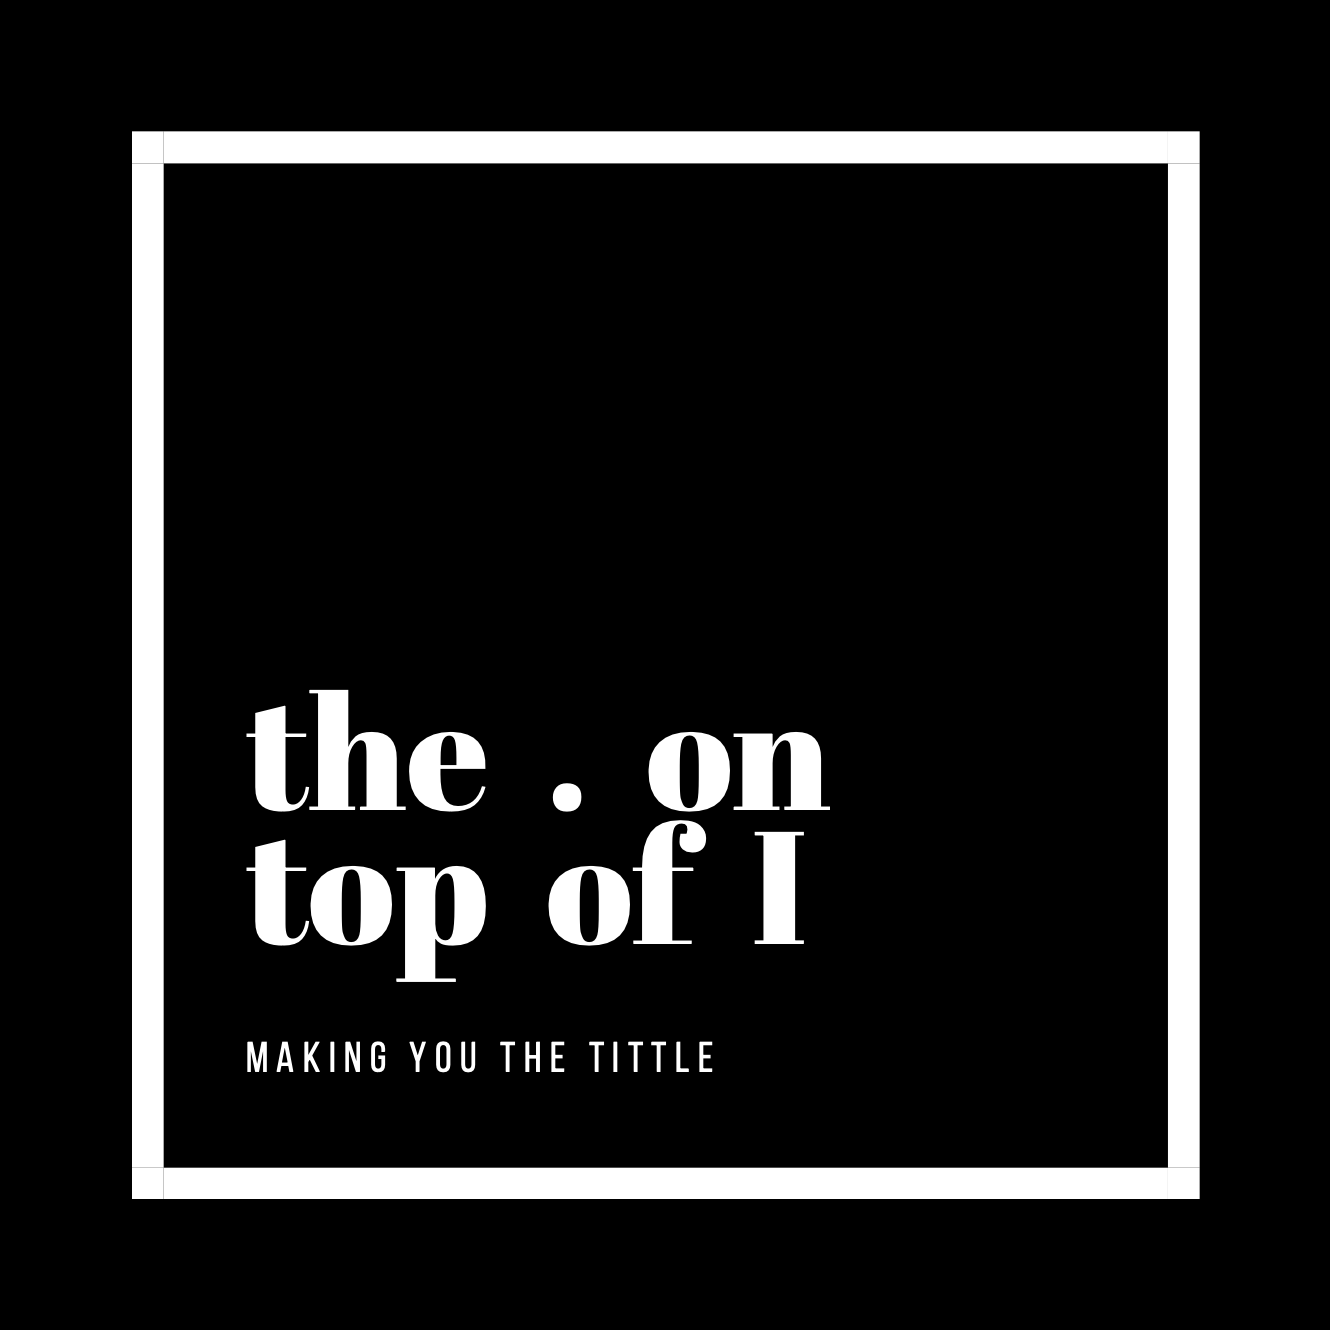 The . on top of I Logo